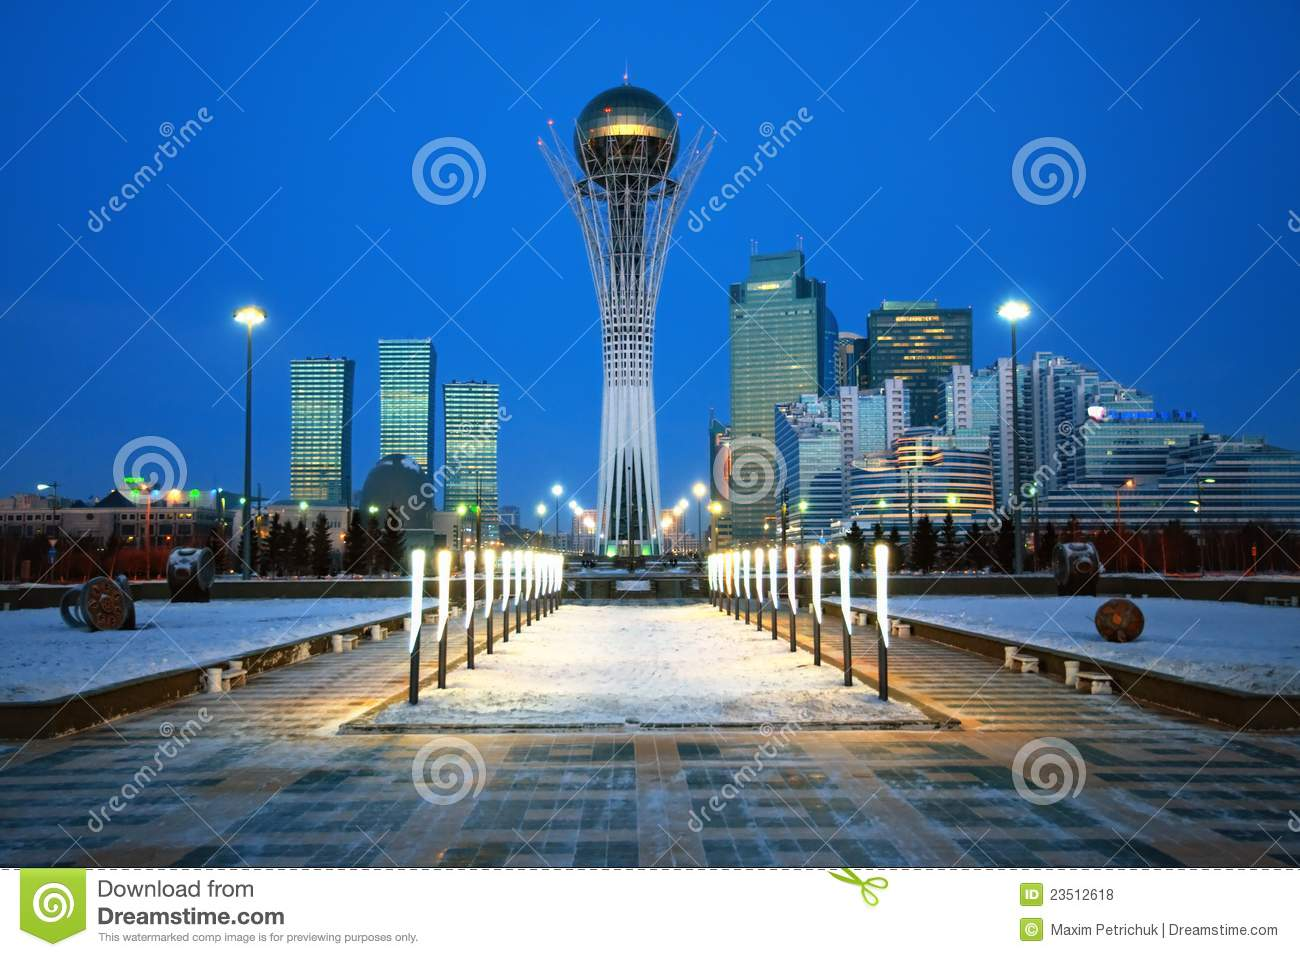 City of Astana - the capital of Kazakhstan